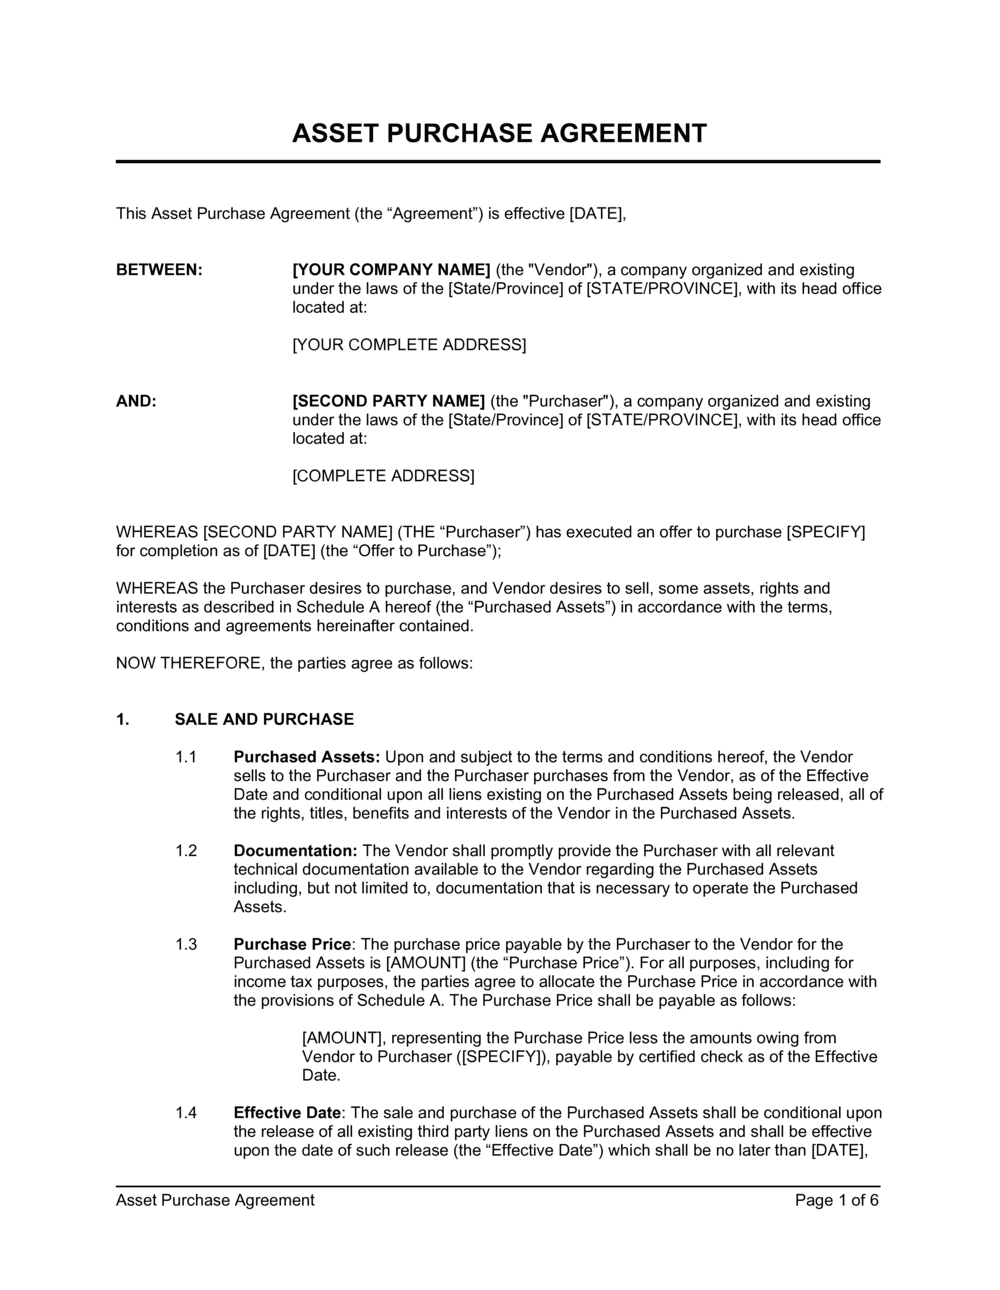 Business-in-a-Box's Asset Purchase Agreement Simple Template